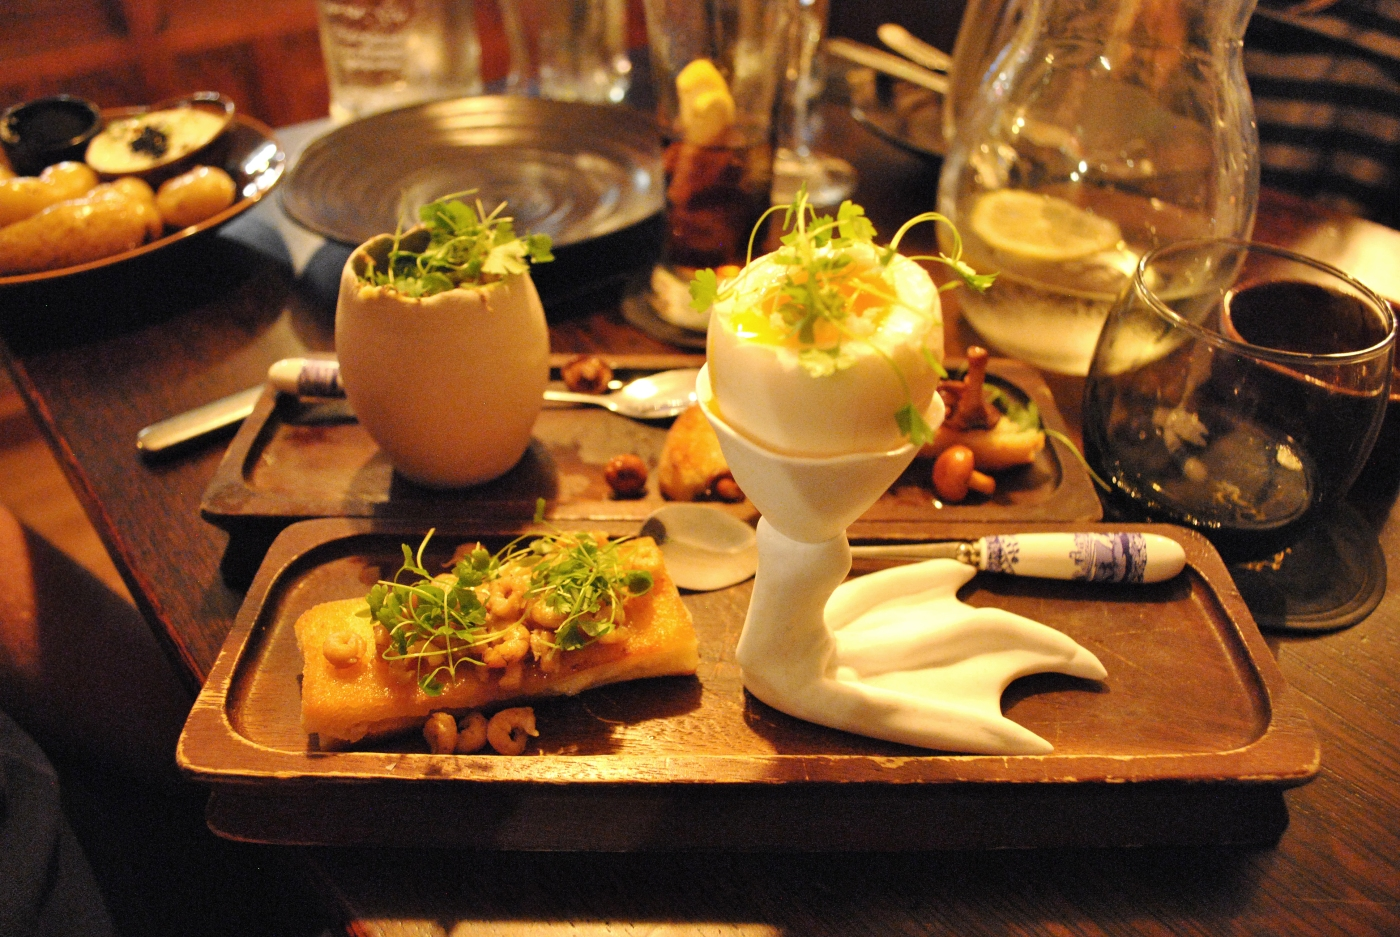 Soft Boiled Duck Egg, Toasted Crab Sandwich, Melting Potted Shrimps